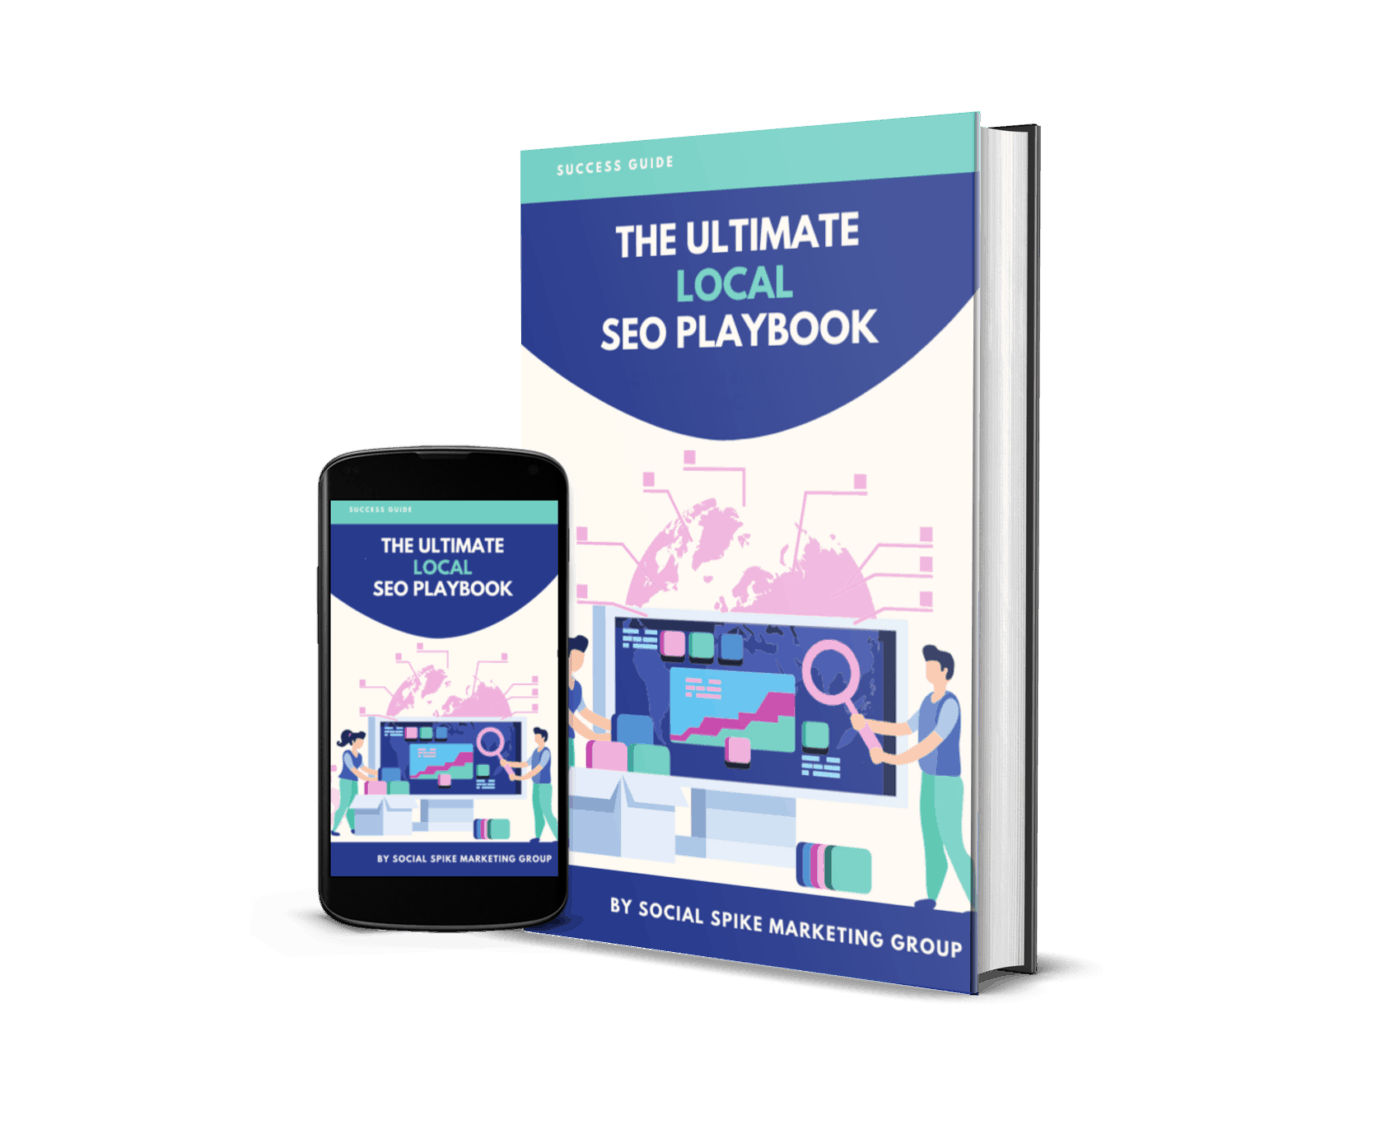 The Ultimate Local SEO Playbook cover by Social Spike Marketing Group